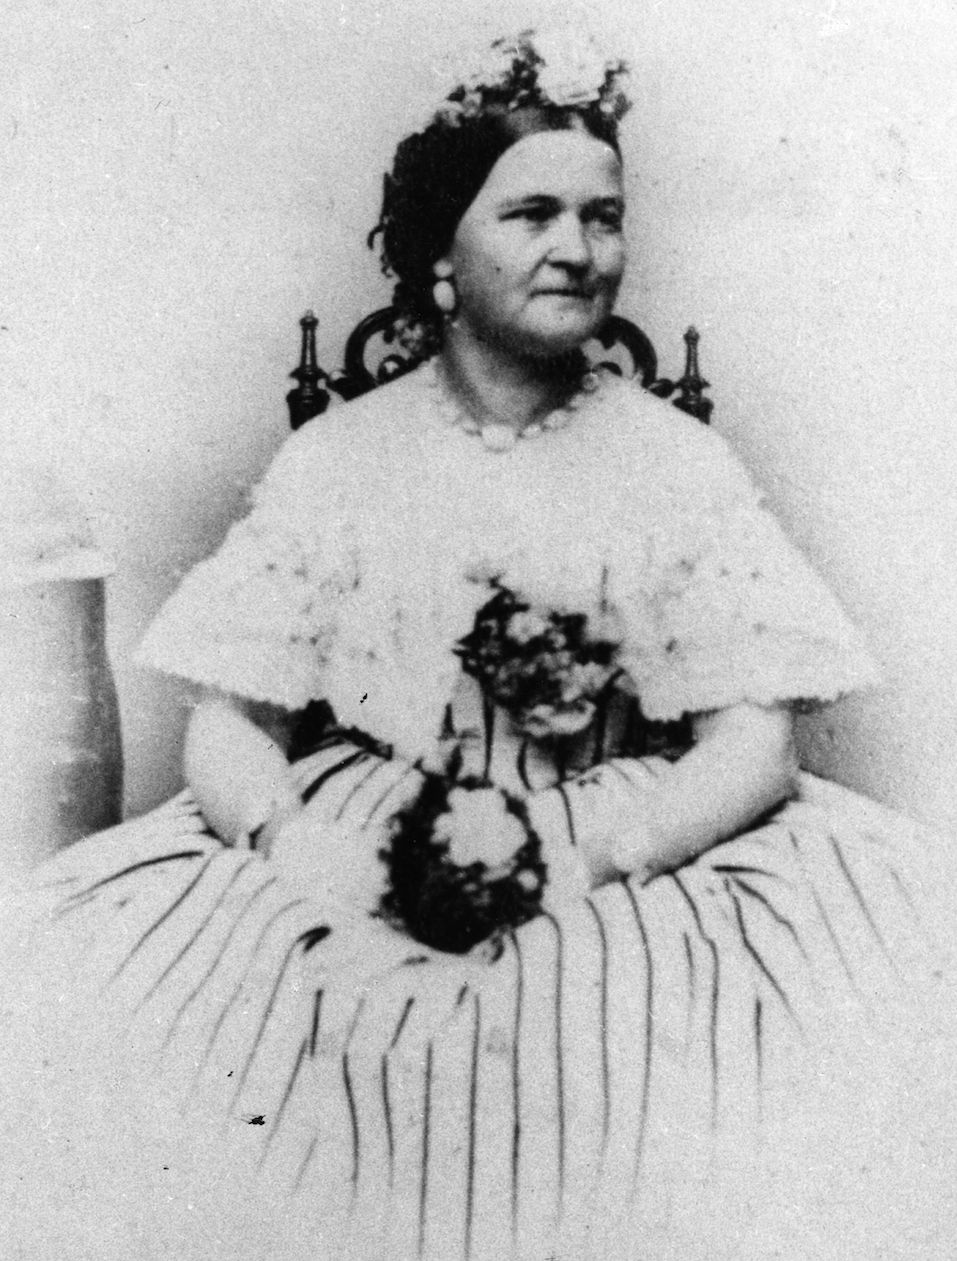 Mary Todd Lincoln (1818 - 1882), nee Mary Todd, the wife of Abraham Lincoln